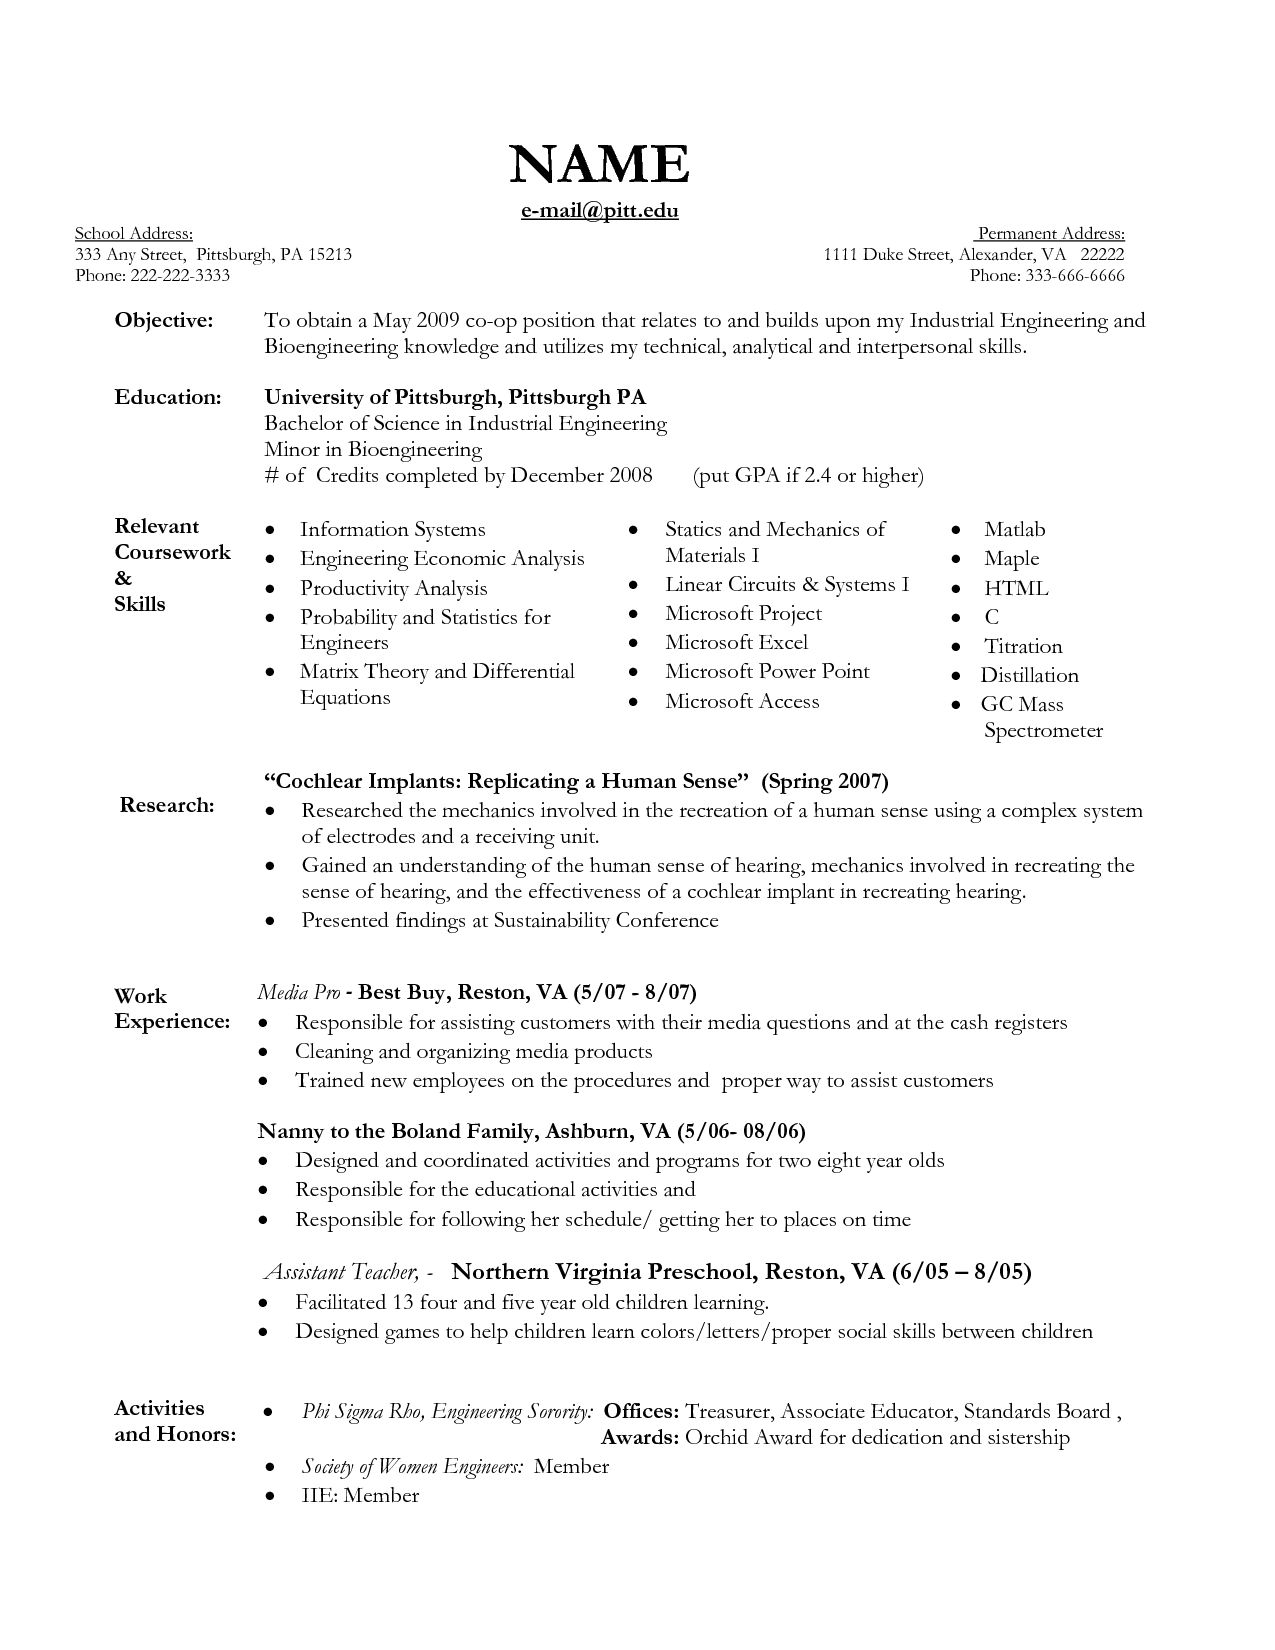 Chef Skills Resume Amazing Resume Examples For 19 Year Old  Resume Examples  Pinterest .